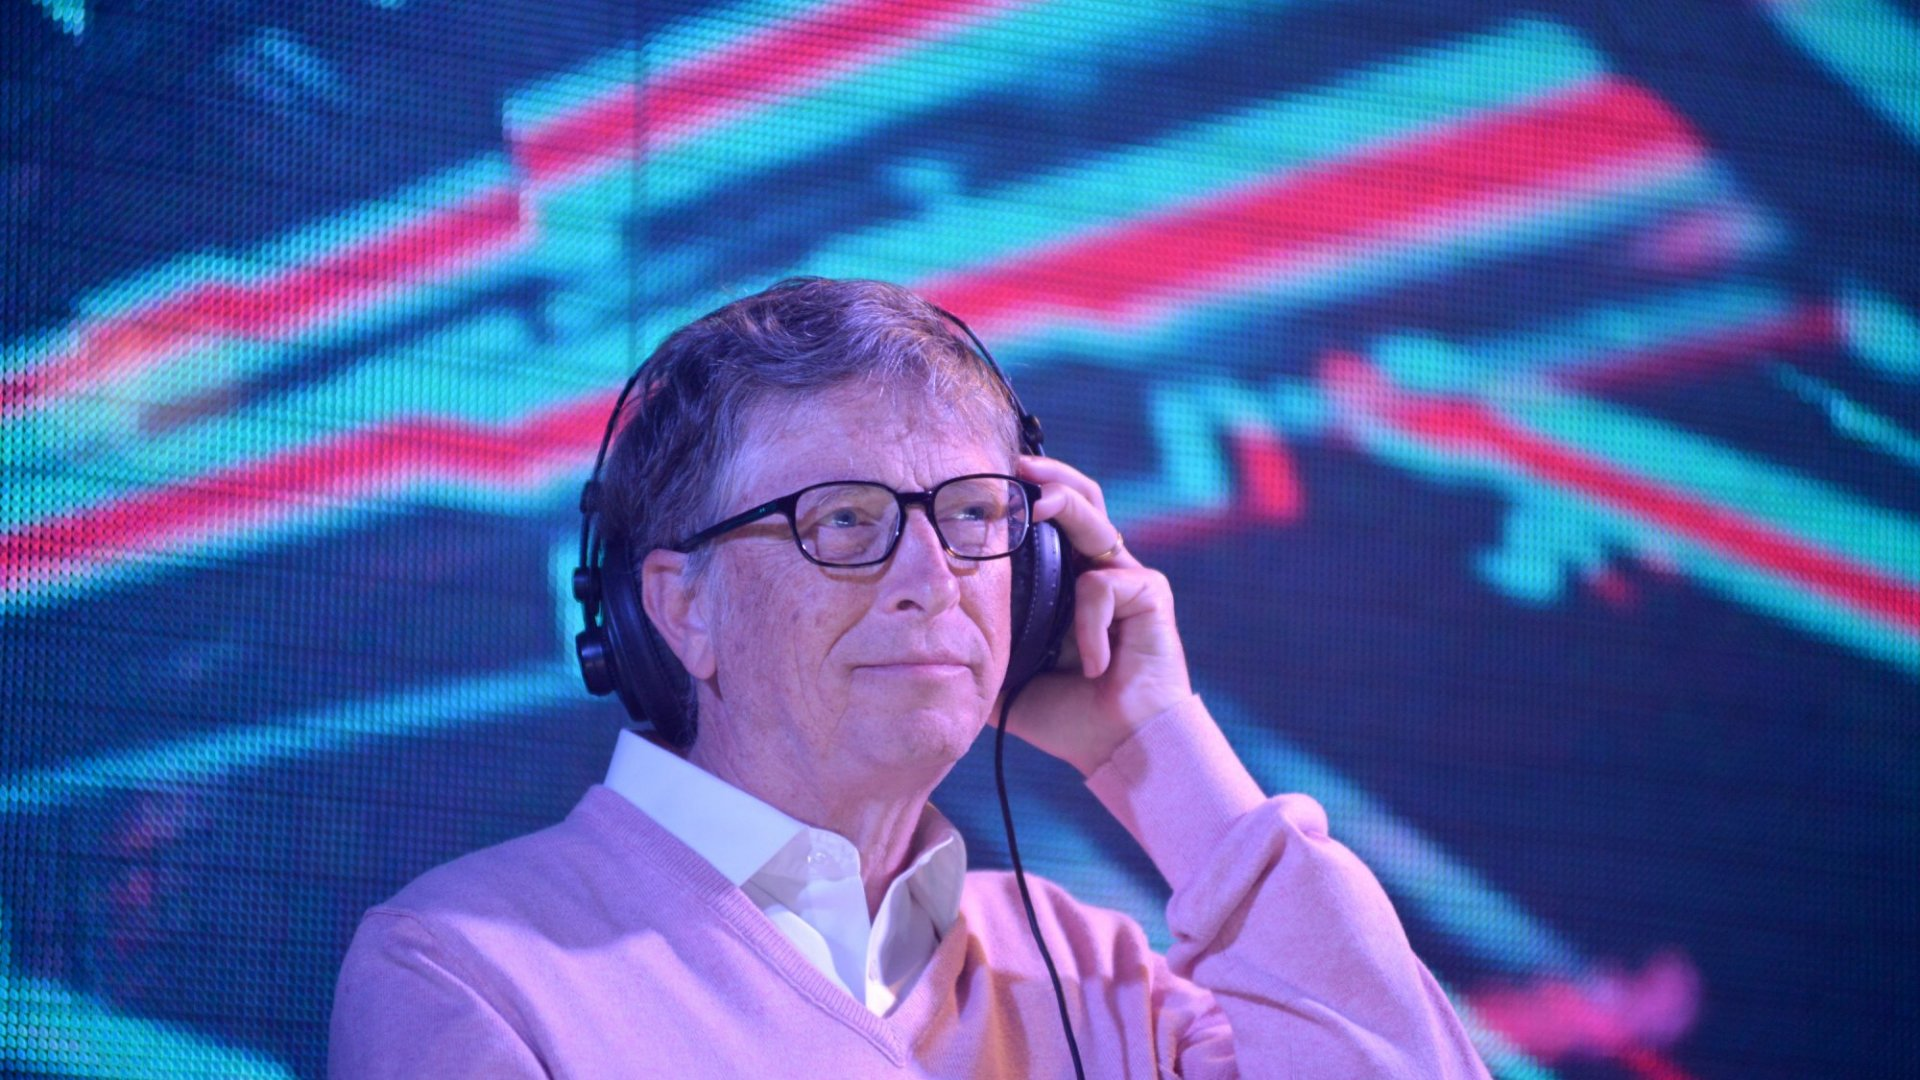 Still Trying to Cut Out Distractions? Bill Gates Stopped Watching TV and Listening to Music For 5 Years in His 20s